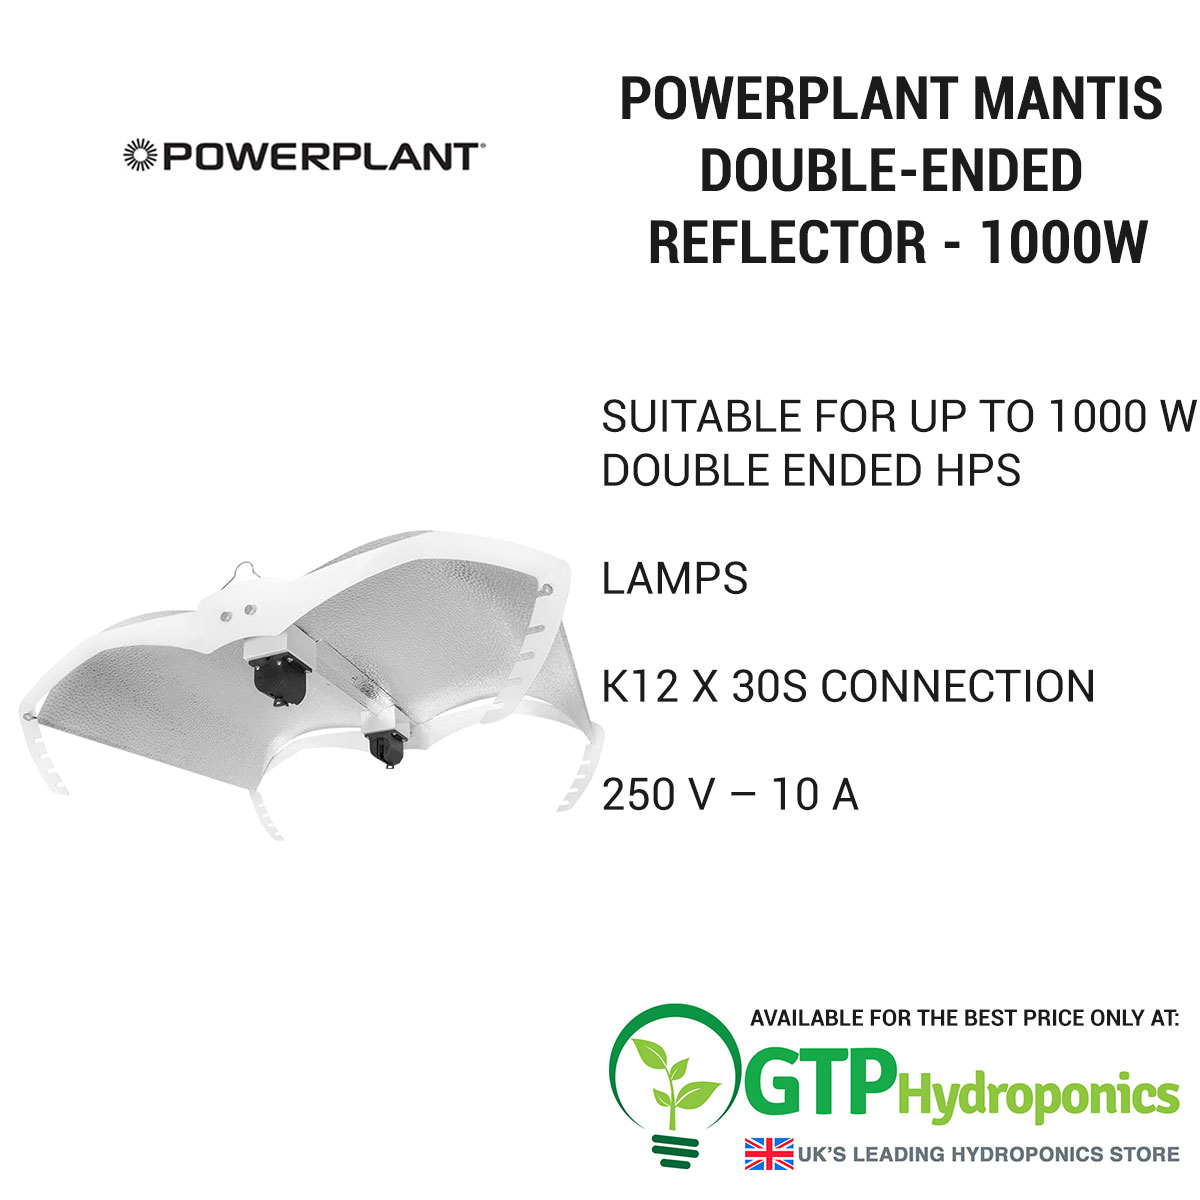 Powerplant Mantis Double-Ended Reflector - 1000w overview